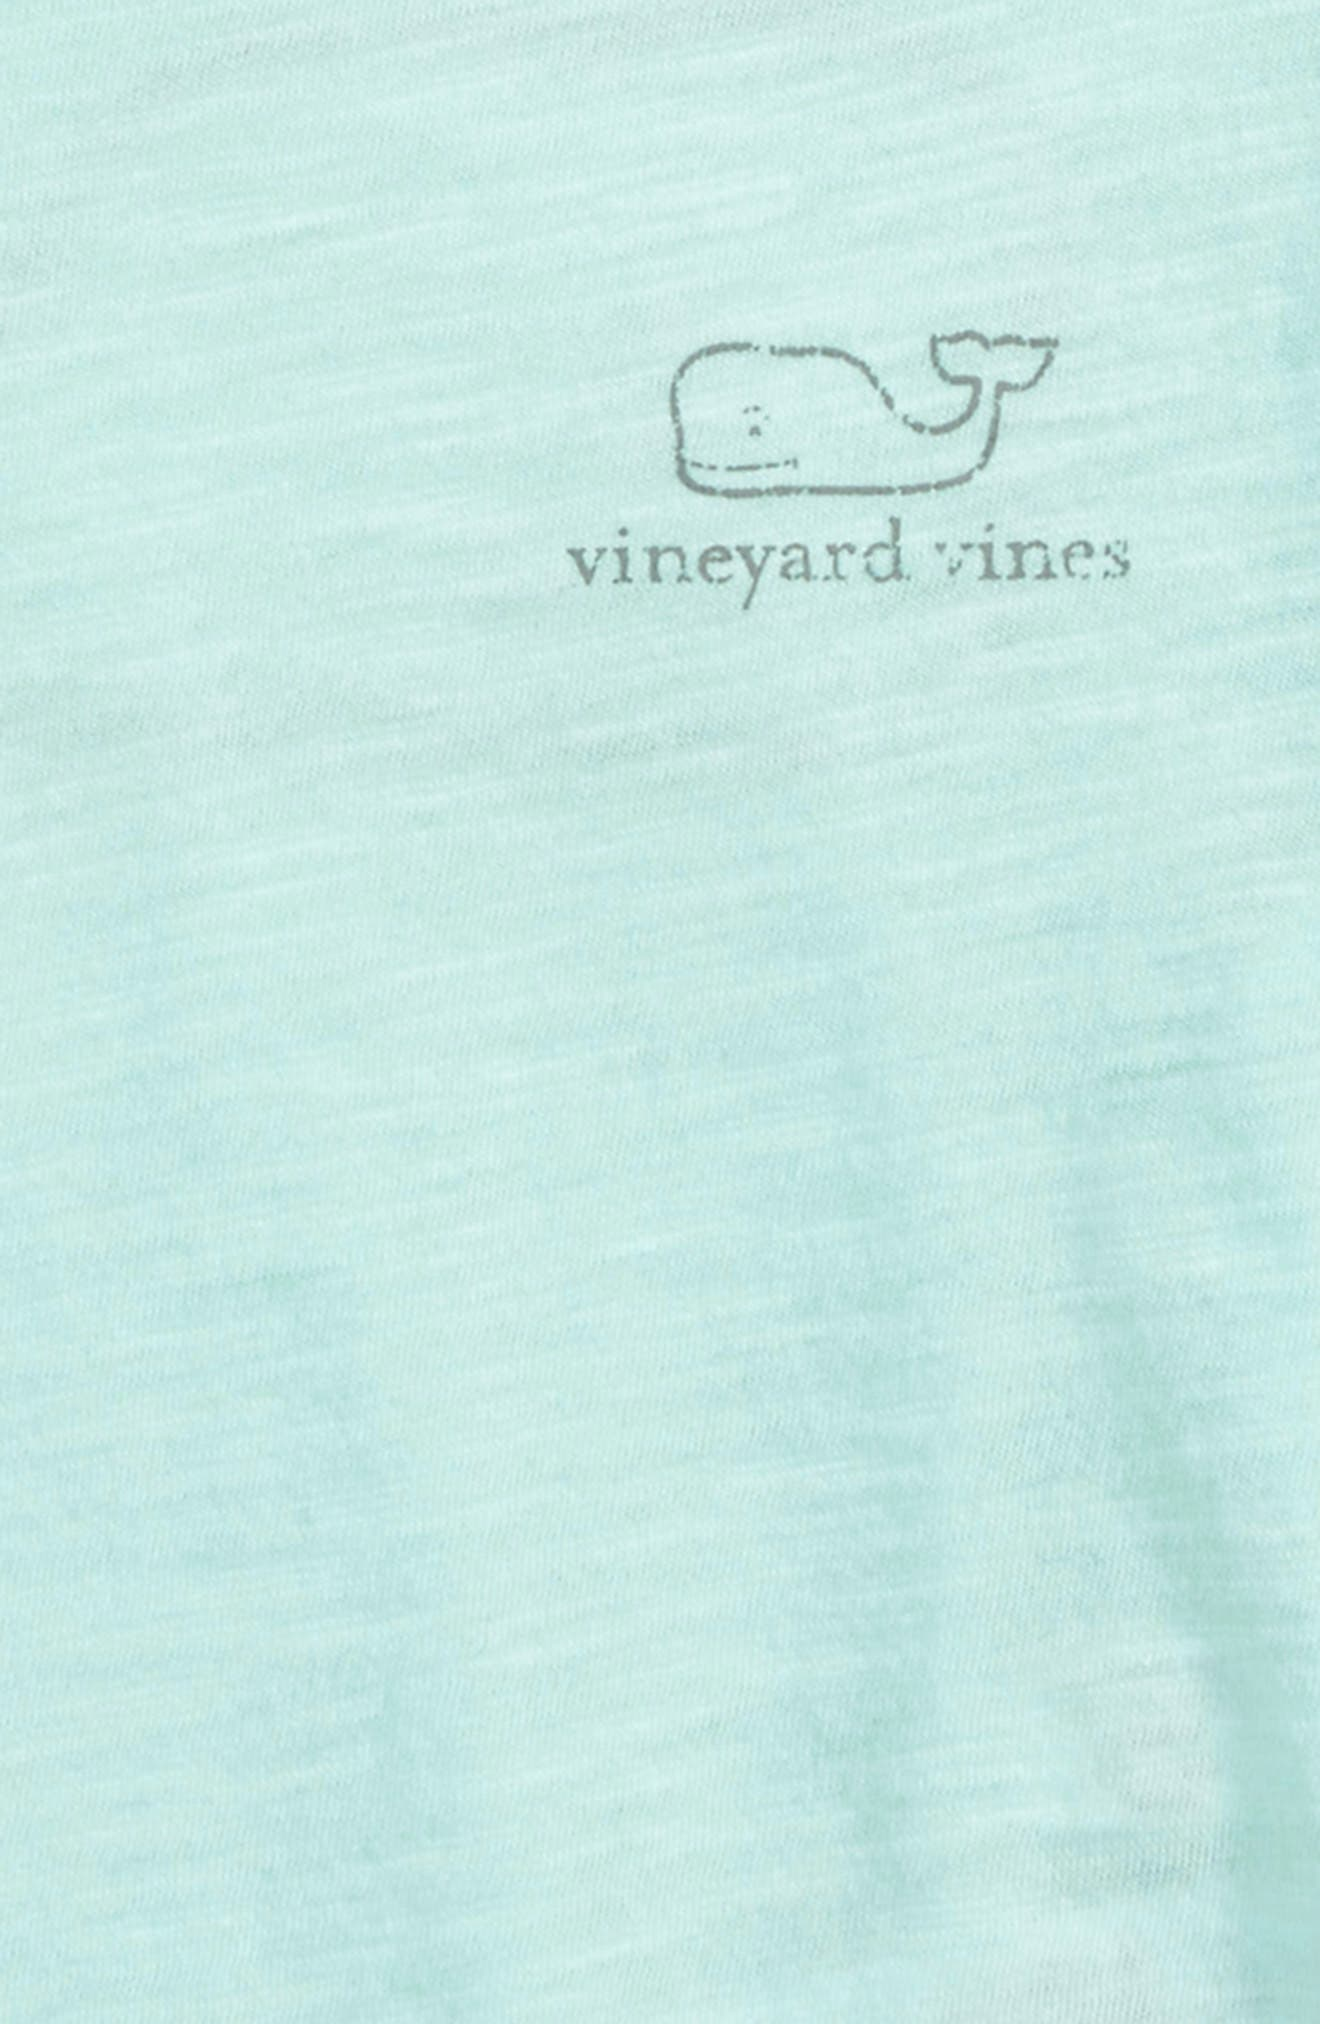 Alternate Image 3  - vineyard vines Slub Vintage Whale Tee (Toddler Girls)